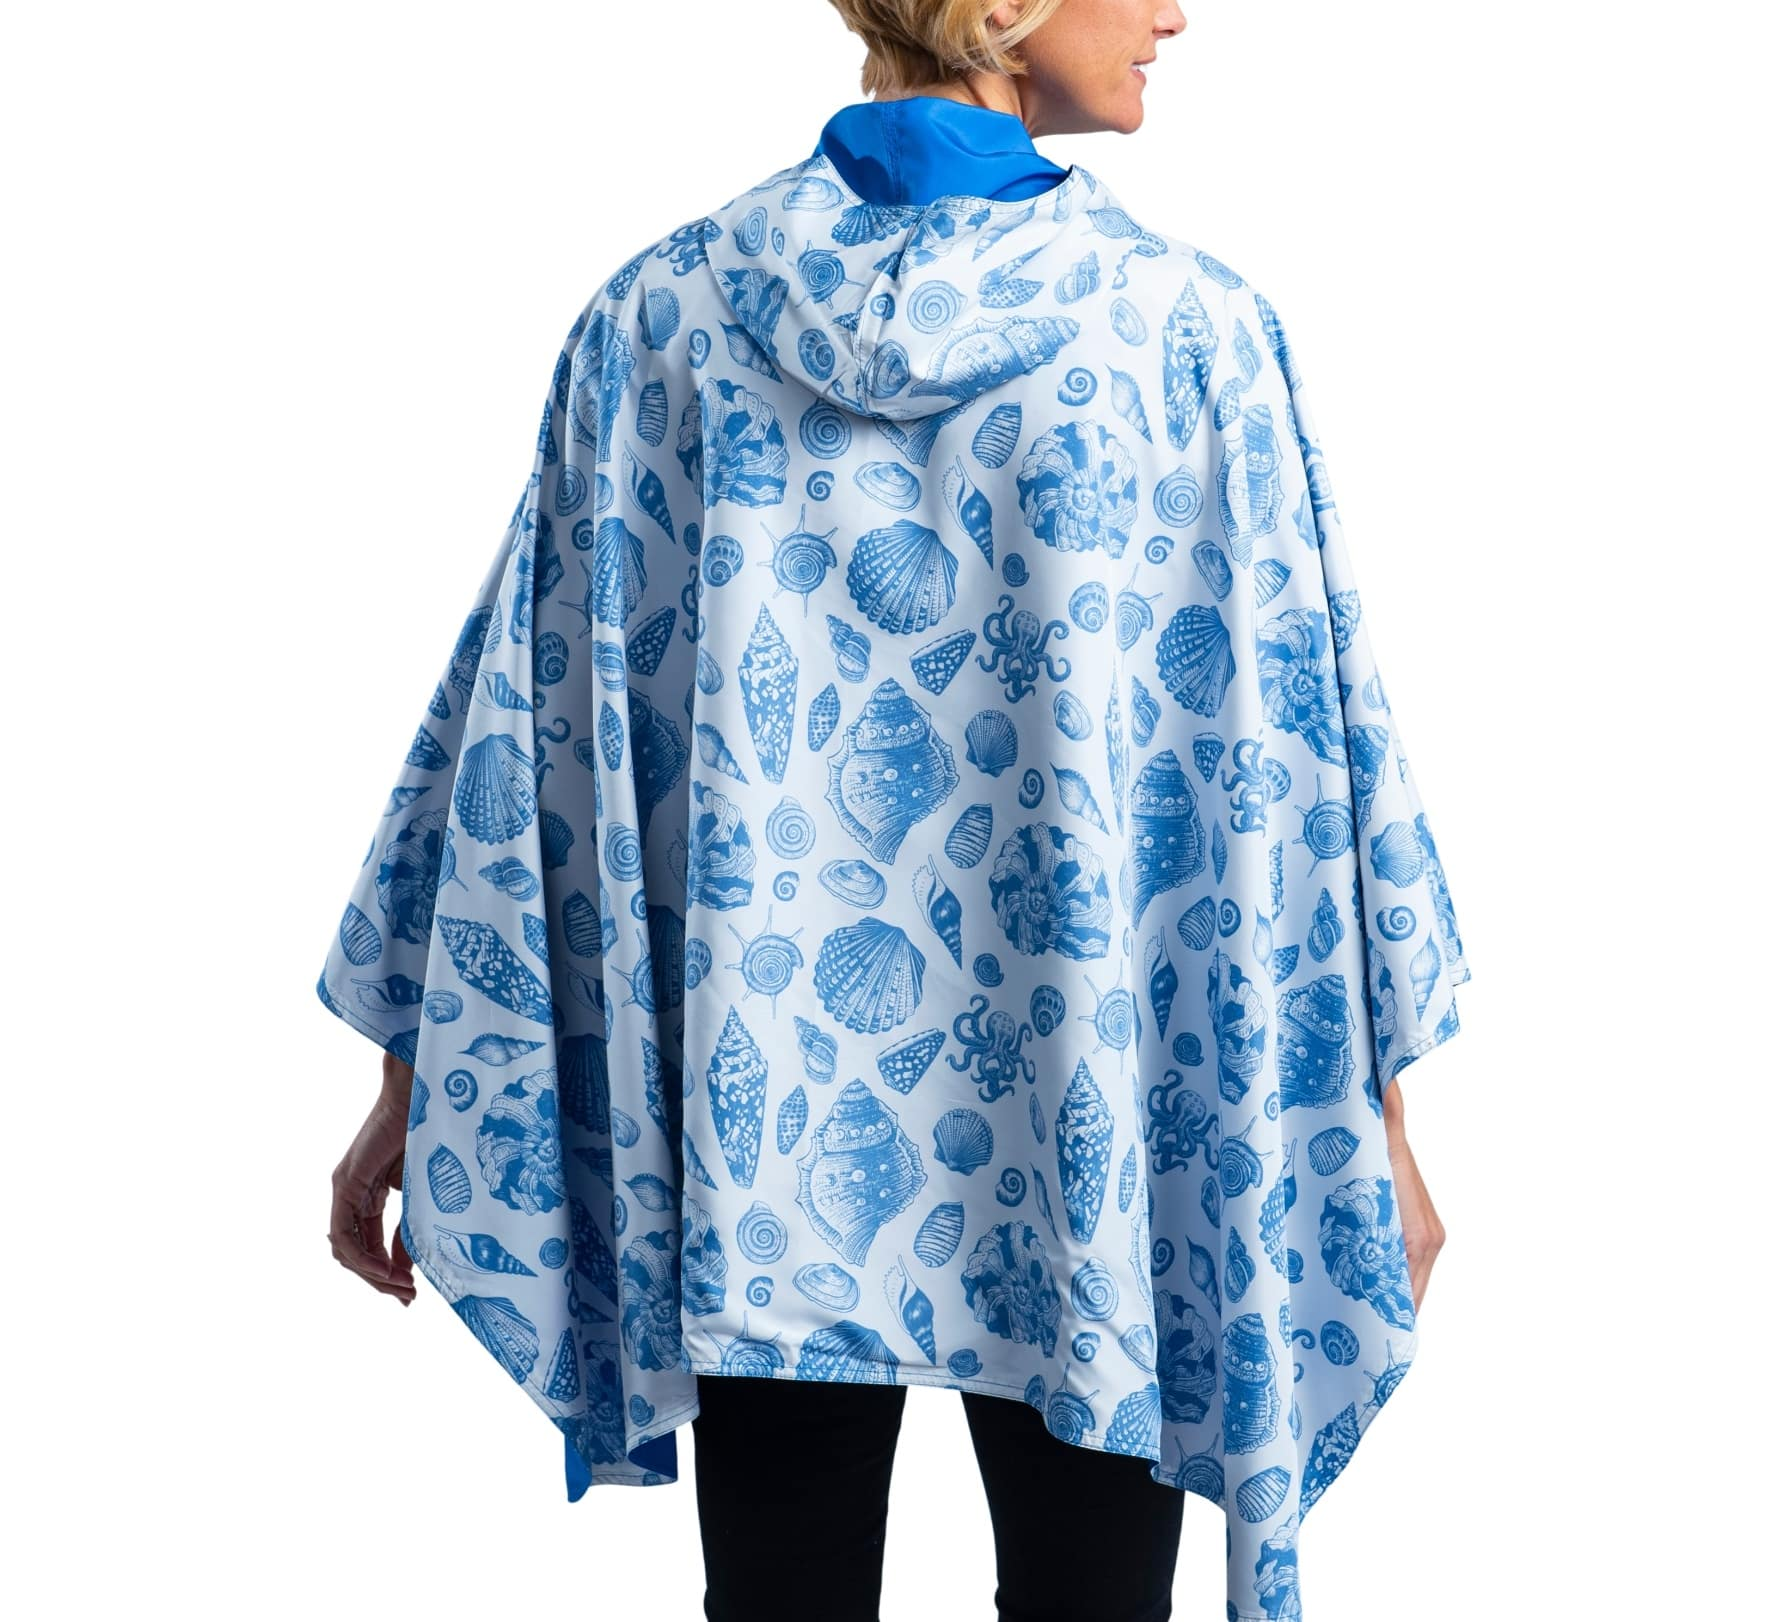 Women wearing an Ocean with Seashells & Tiny Octopus RainCaper travel cape with the Ocean side out, revealing the Seashells & Tiny Octopus print at the lapels and cuffs